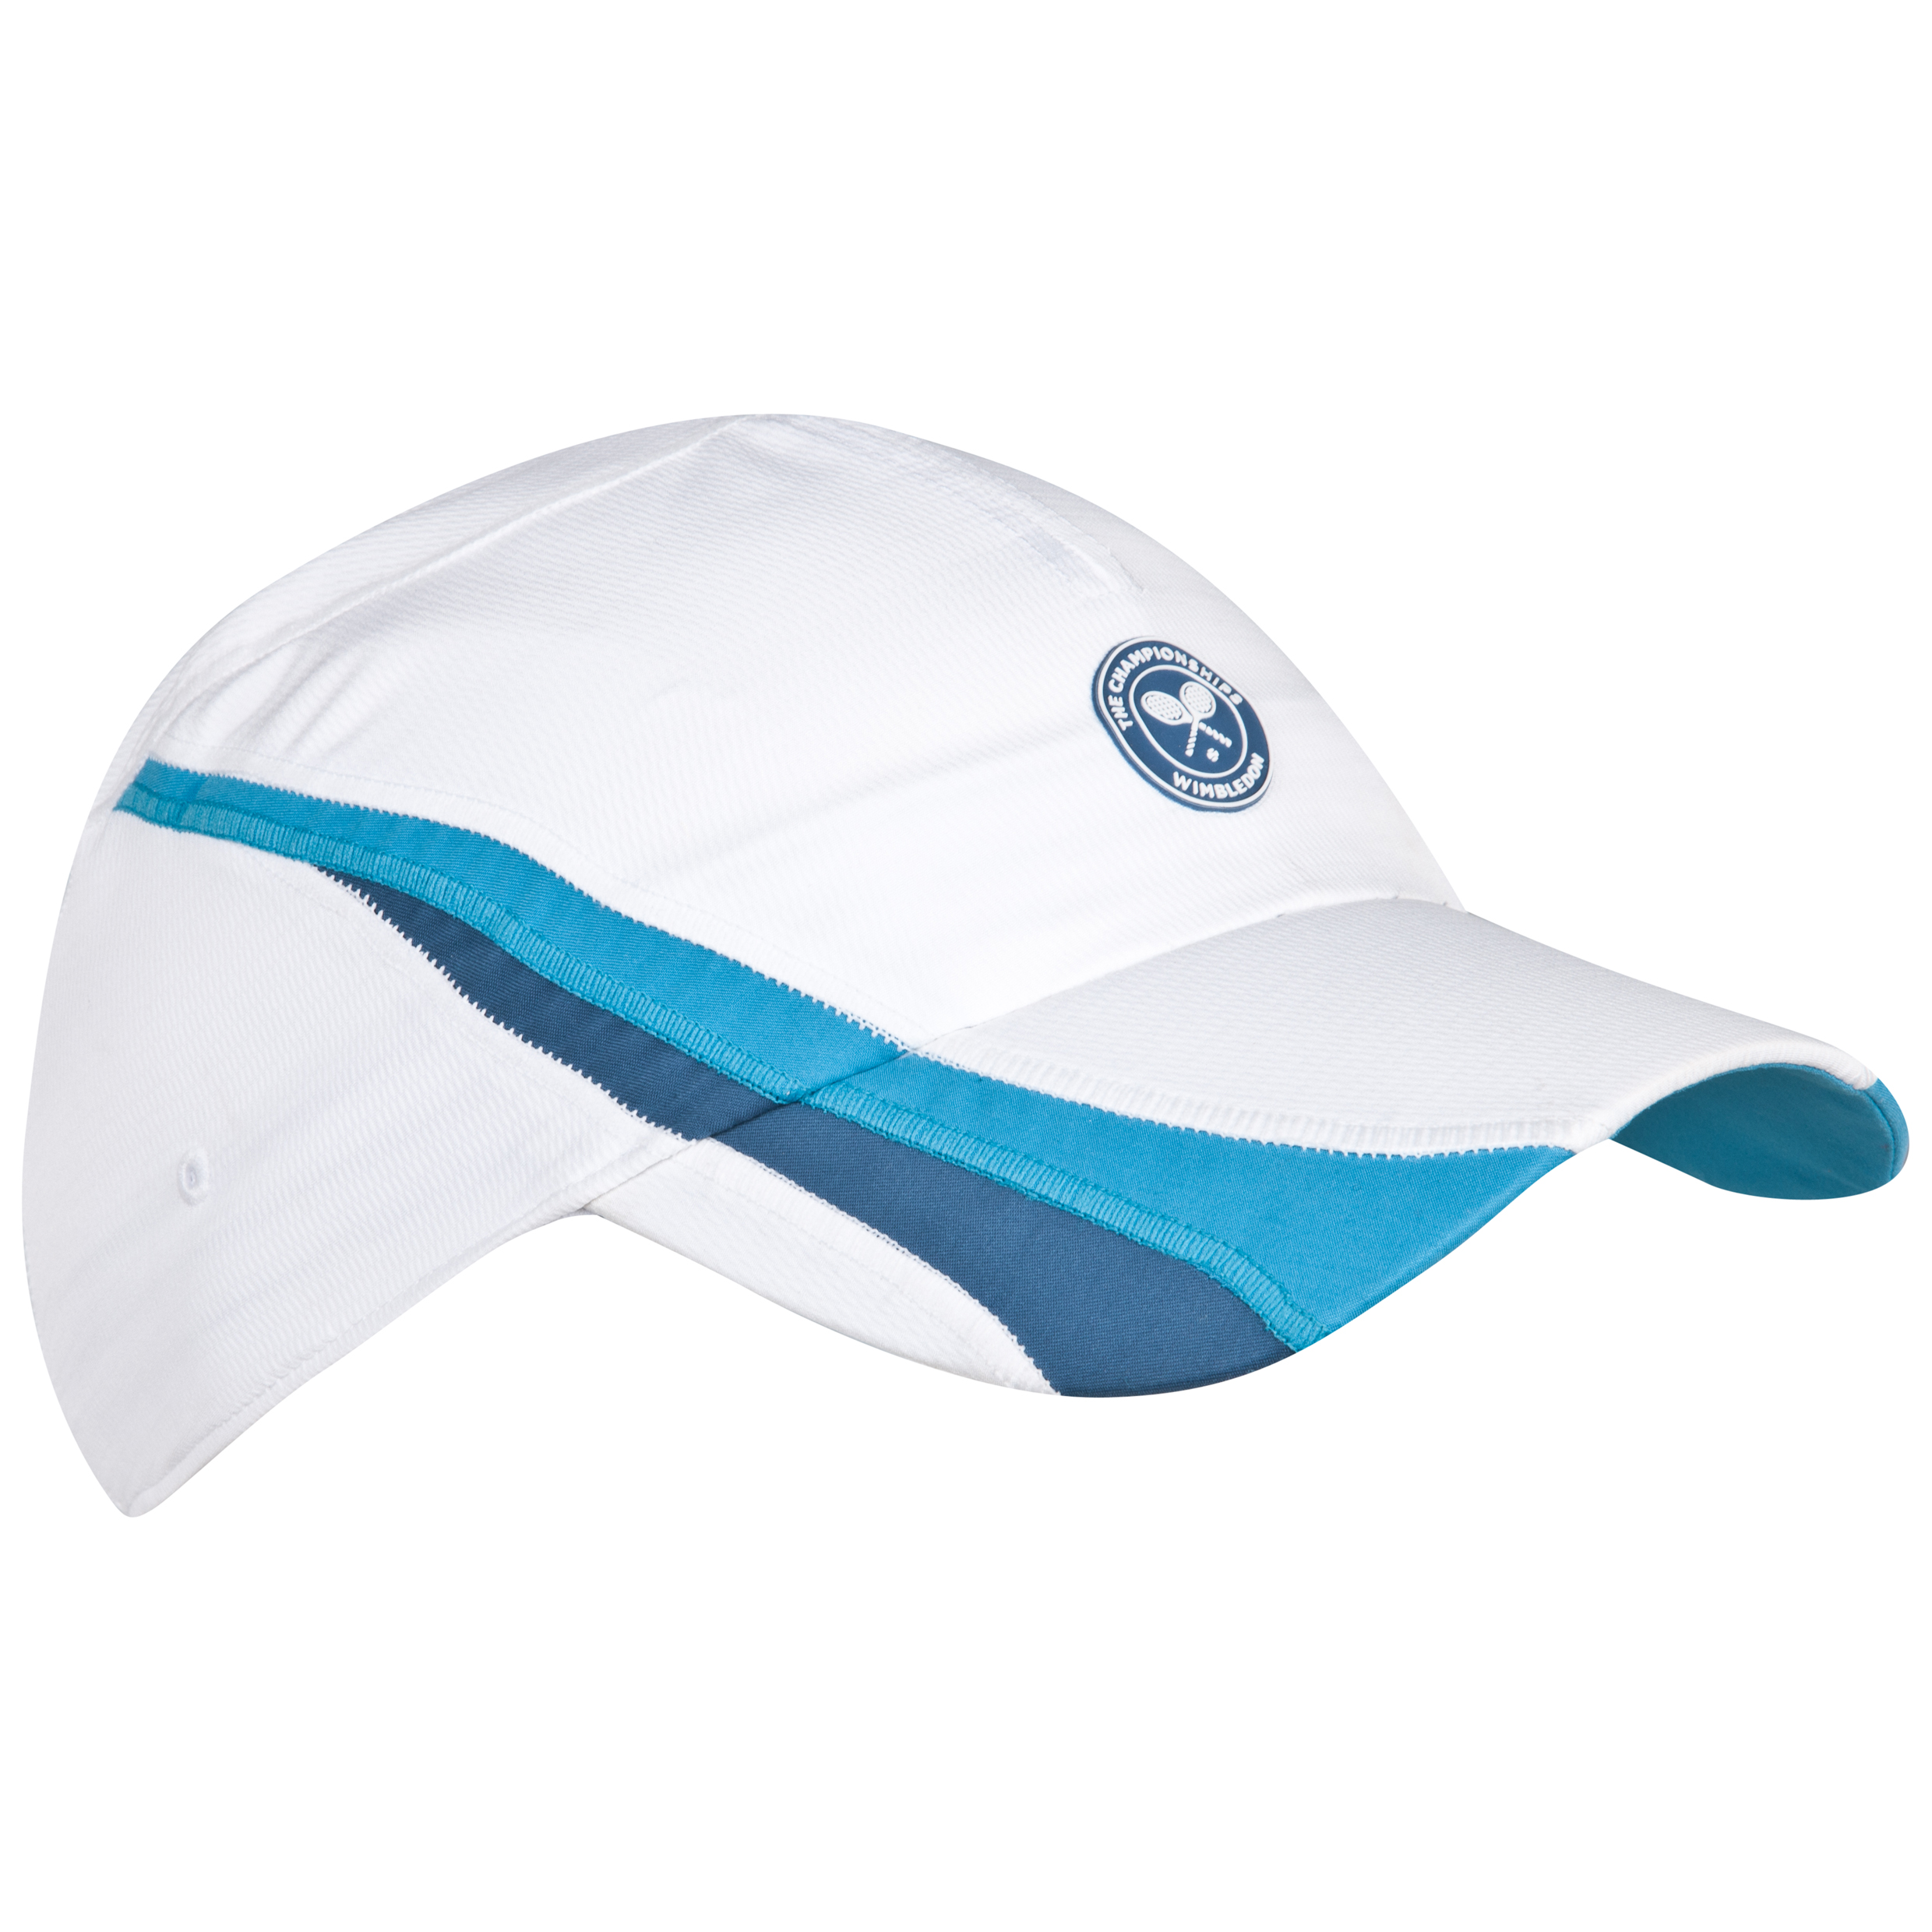 Wimbledon Player Cap - White